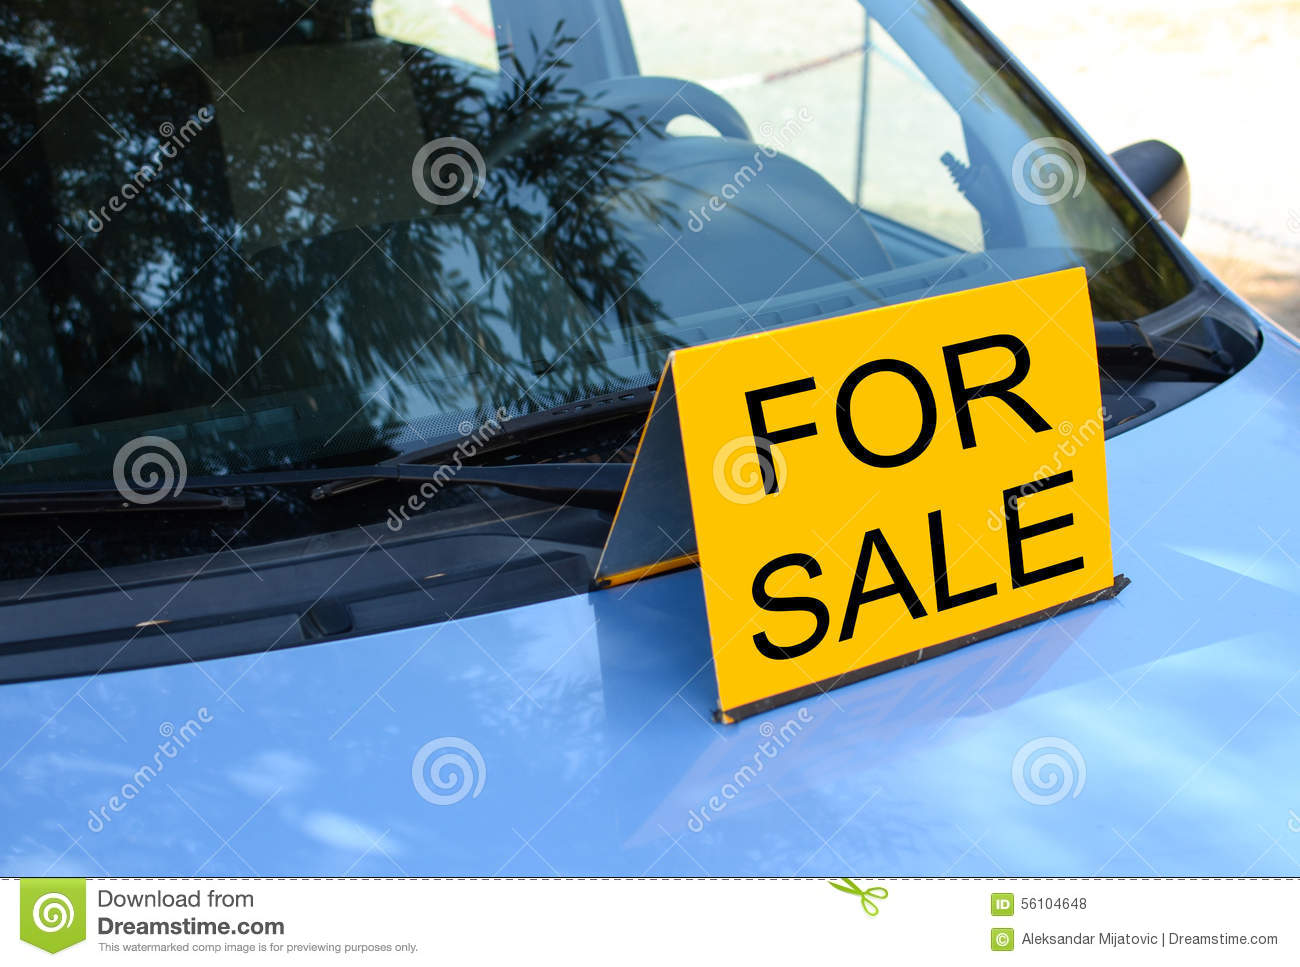 FOR SALE Sign On Car Sell A Car Concept Photo Image – Free for Sale Signs for Cars